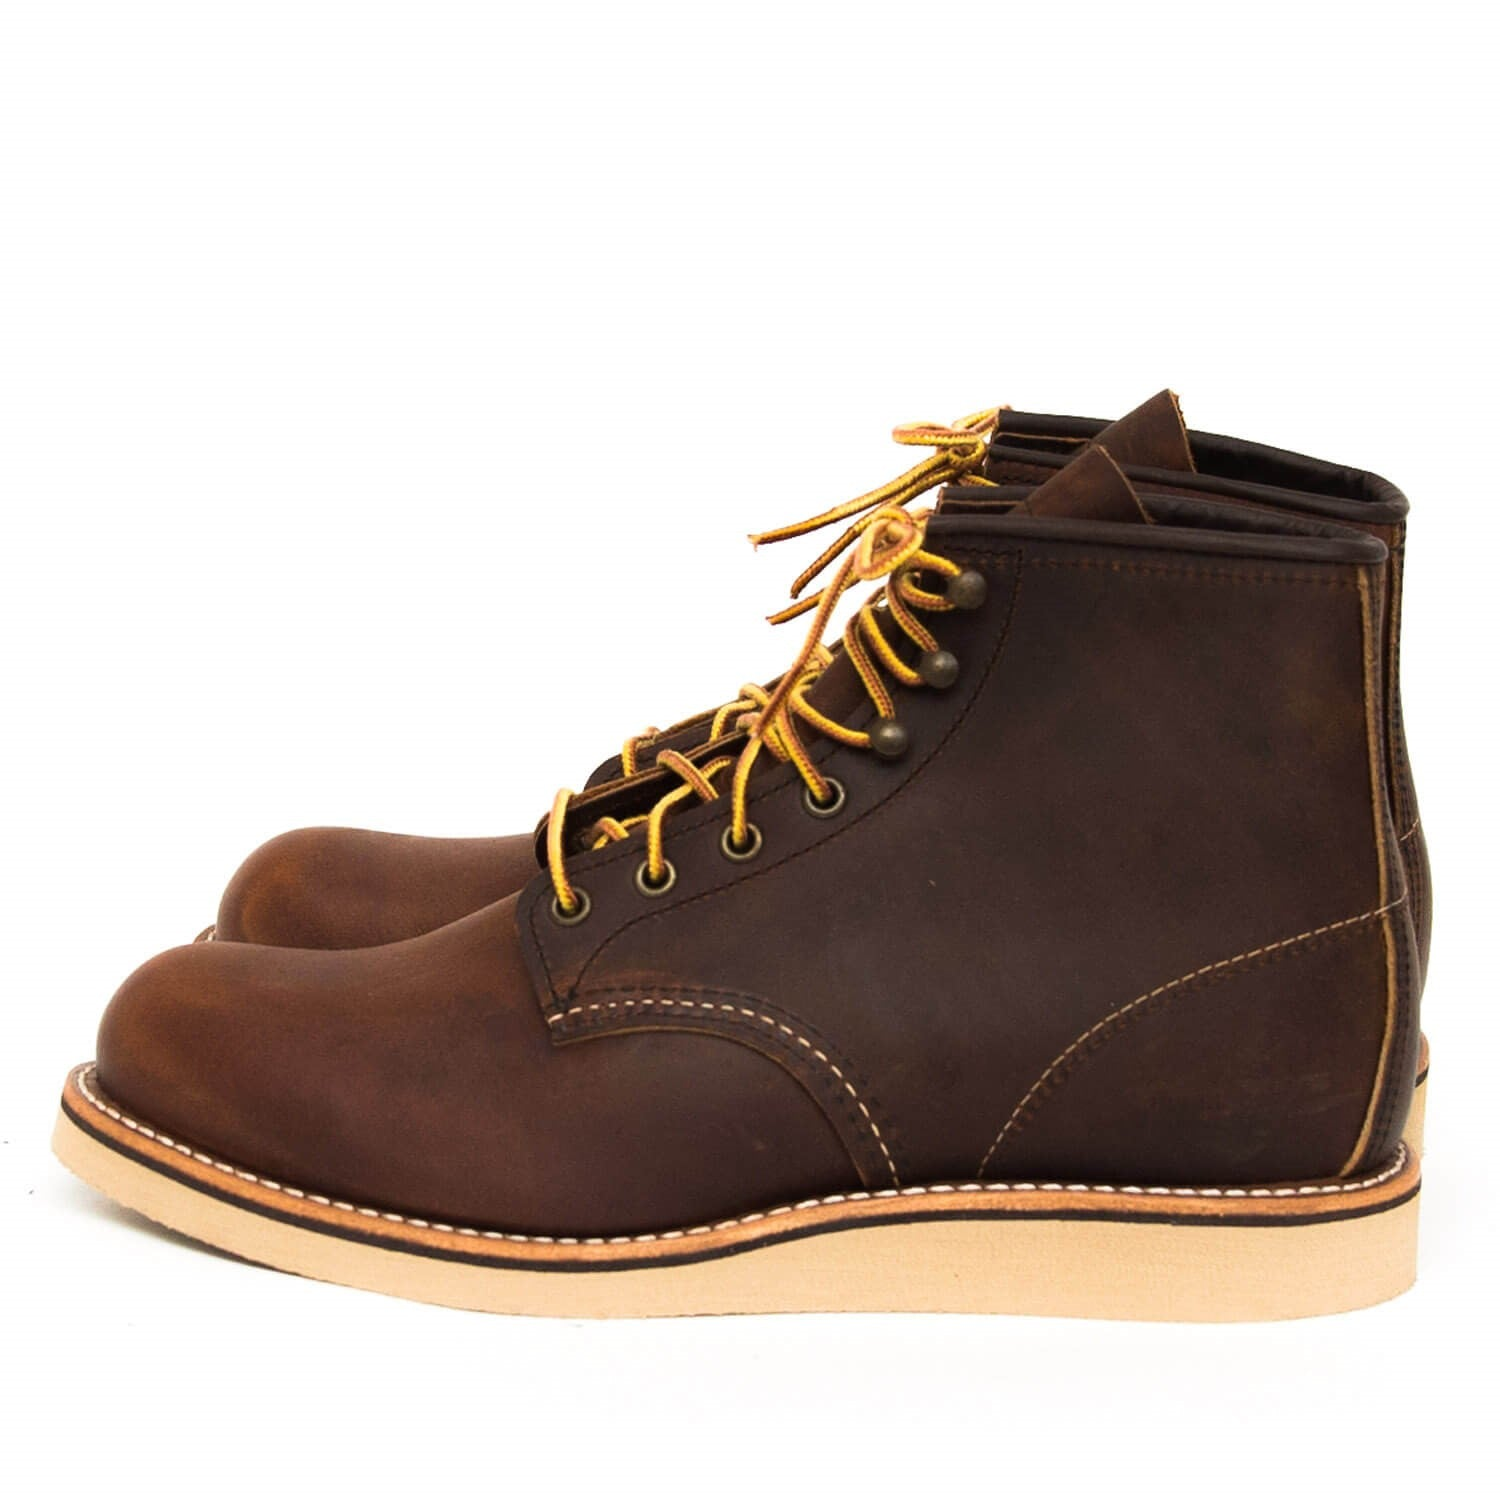 RED WING SHOES ROVER 2950 - COPPER ROUGH & TOUGH